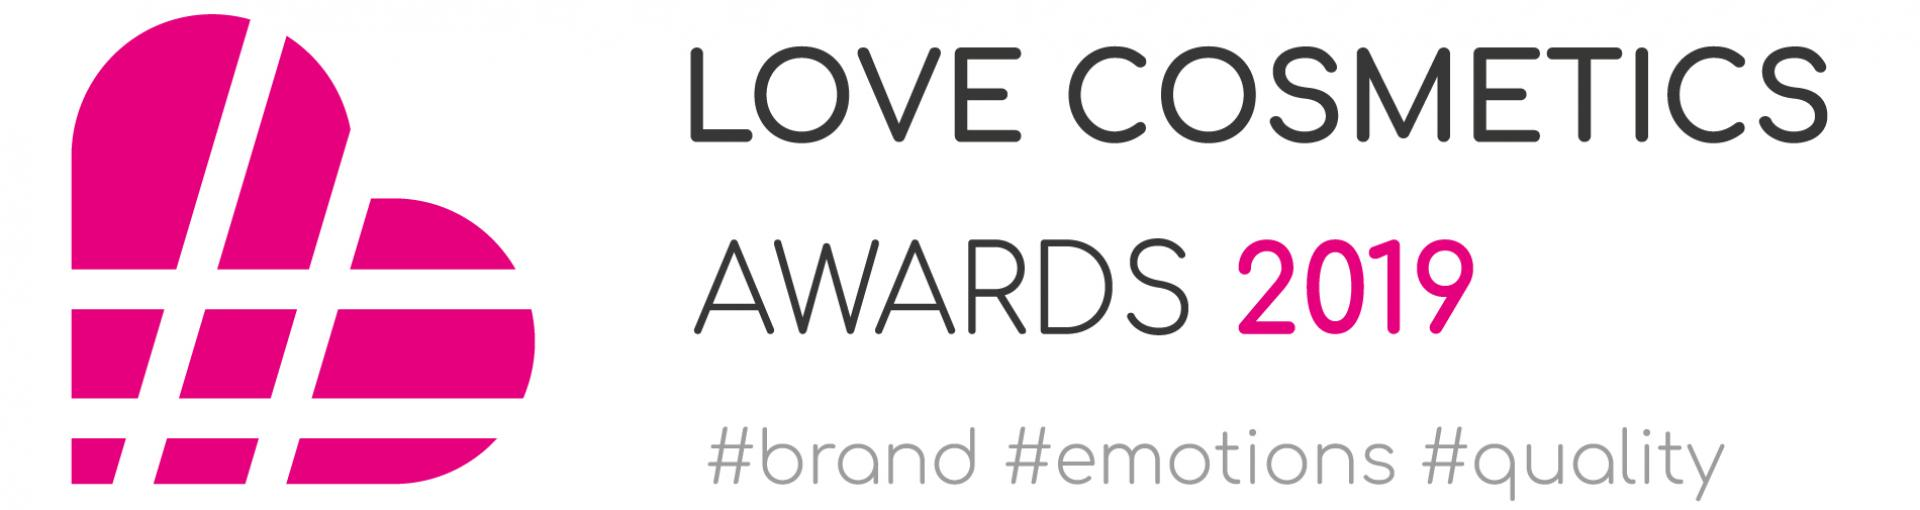 Love Cosmetics Awards 2019 - eksperckie Jury